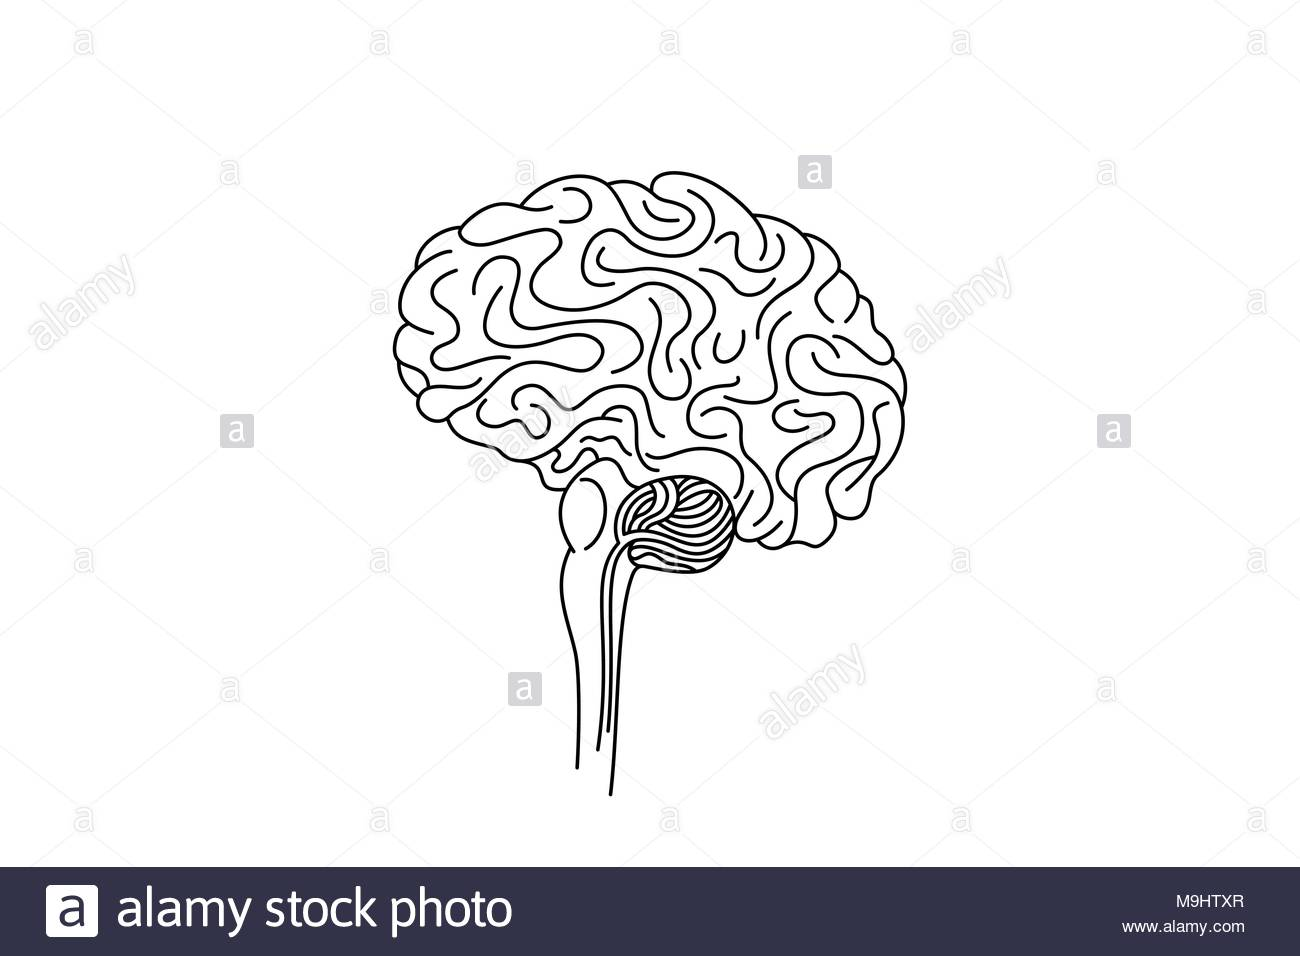 Drawing of  a brain stem, vector illustration. - Stock Image